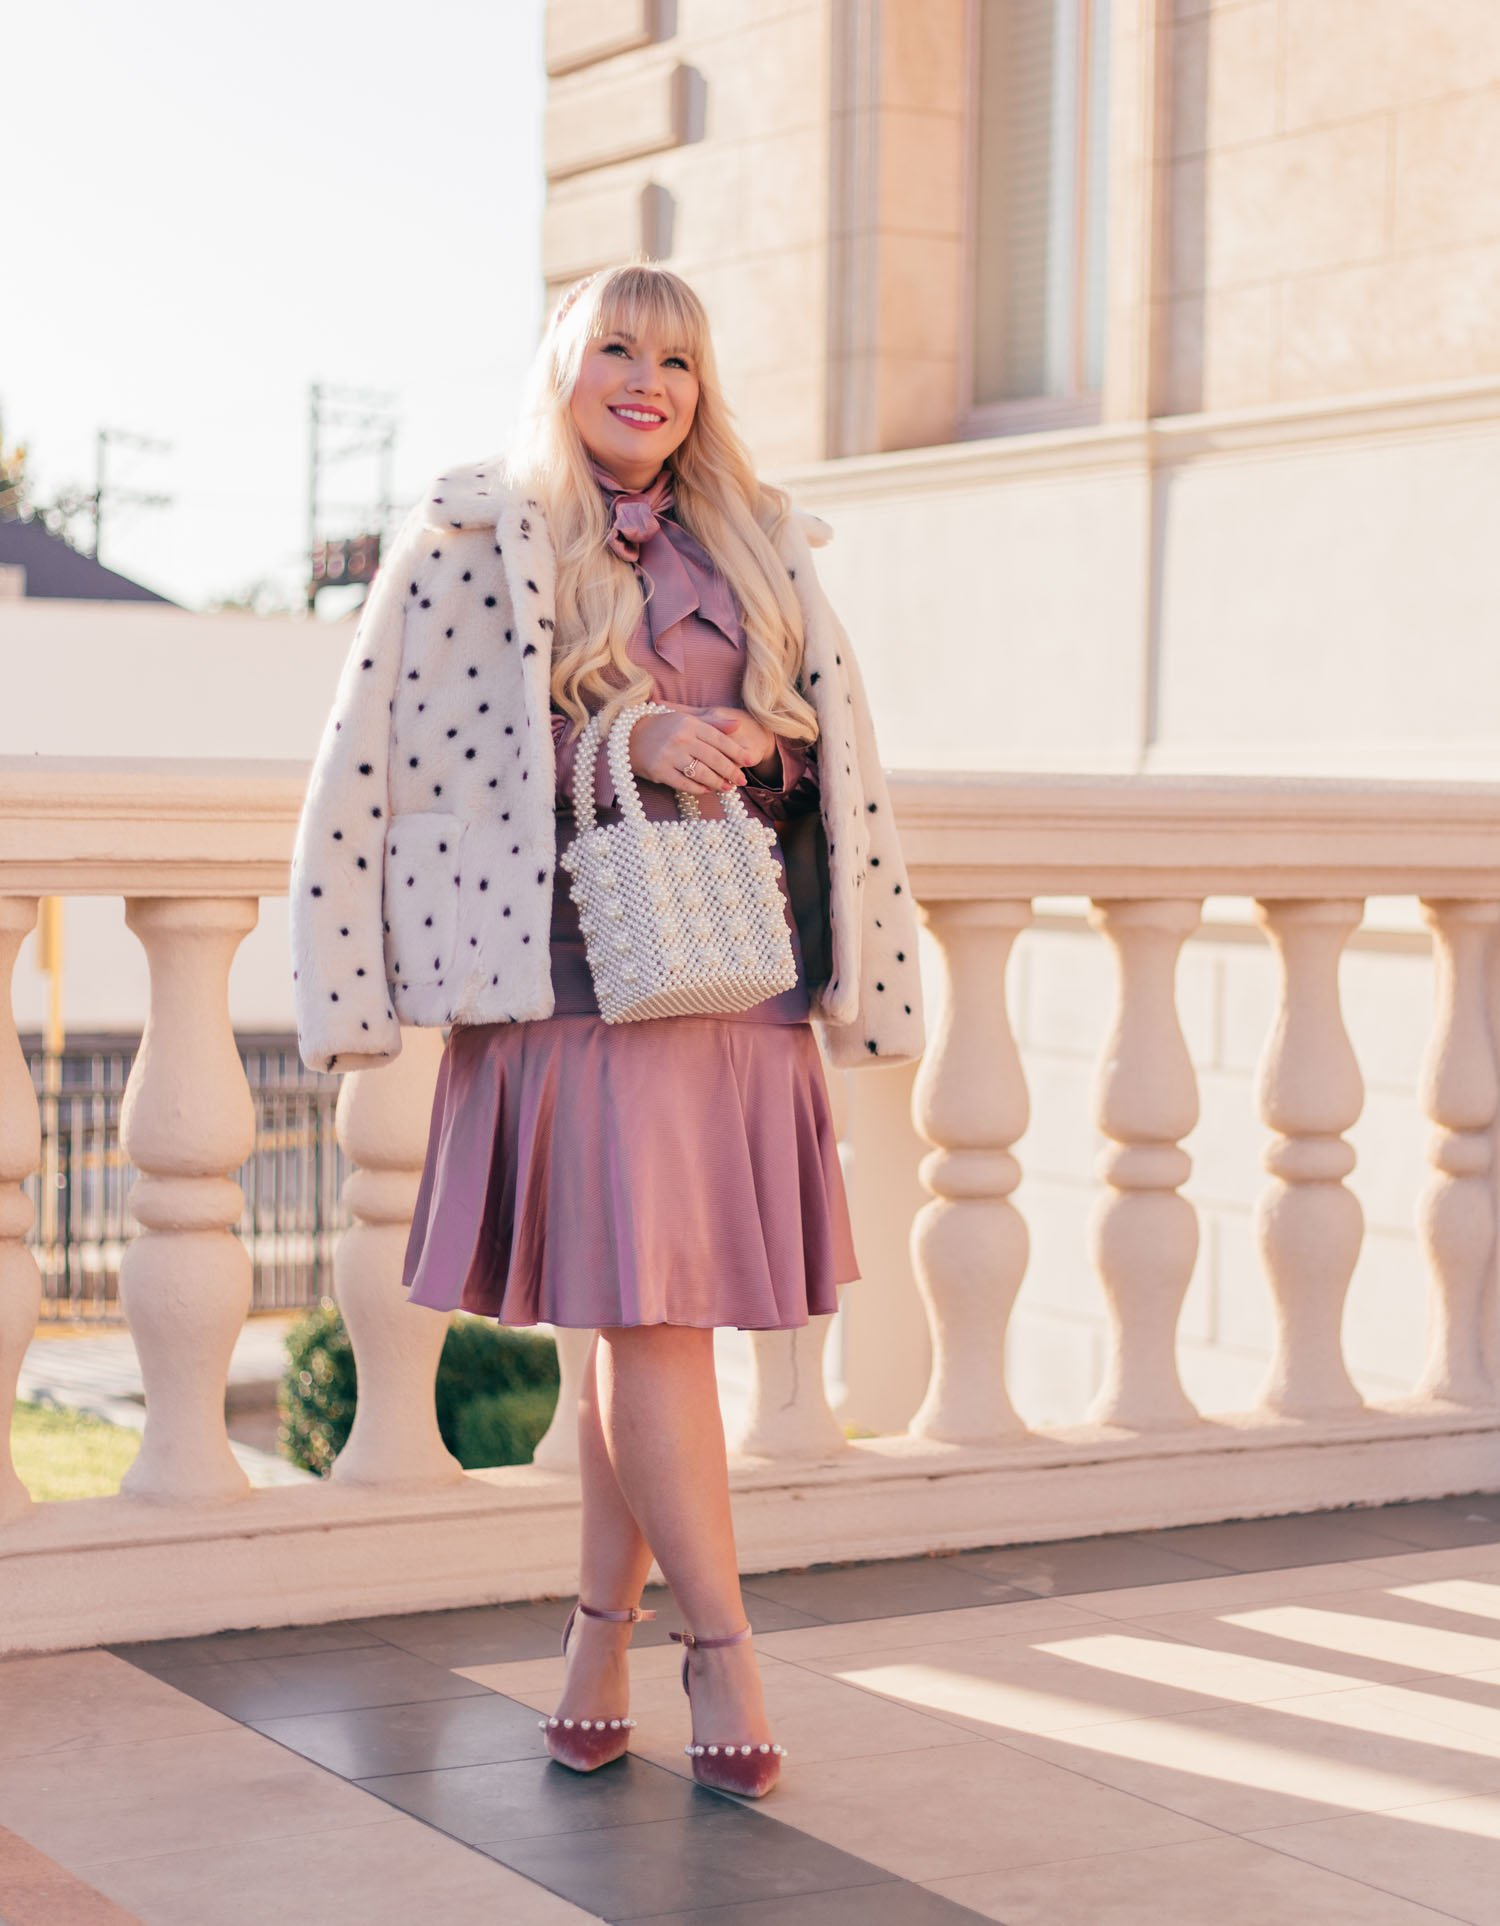 Elizabeth Hugen of Lizzie in Lace styles a faux fur leopard coat for winter!